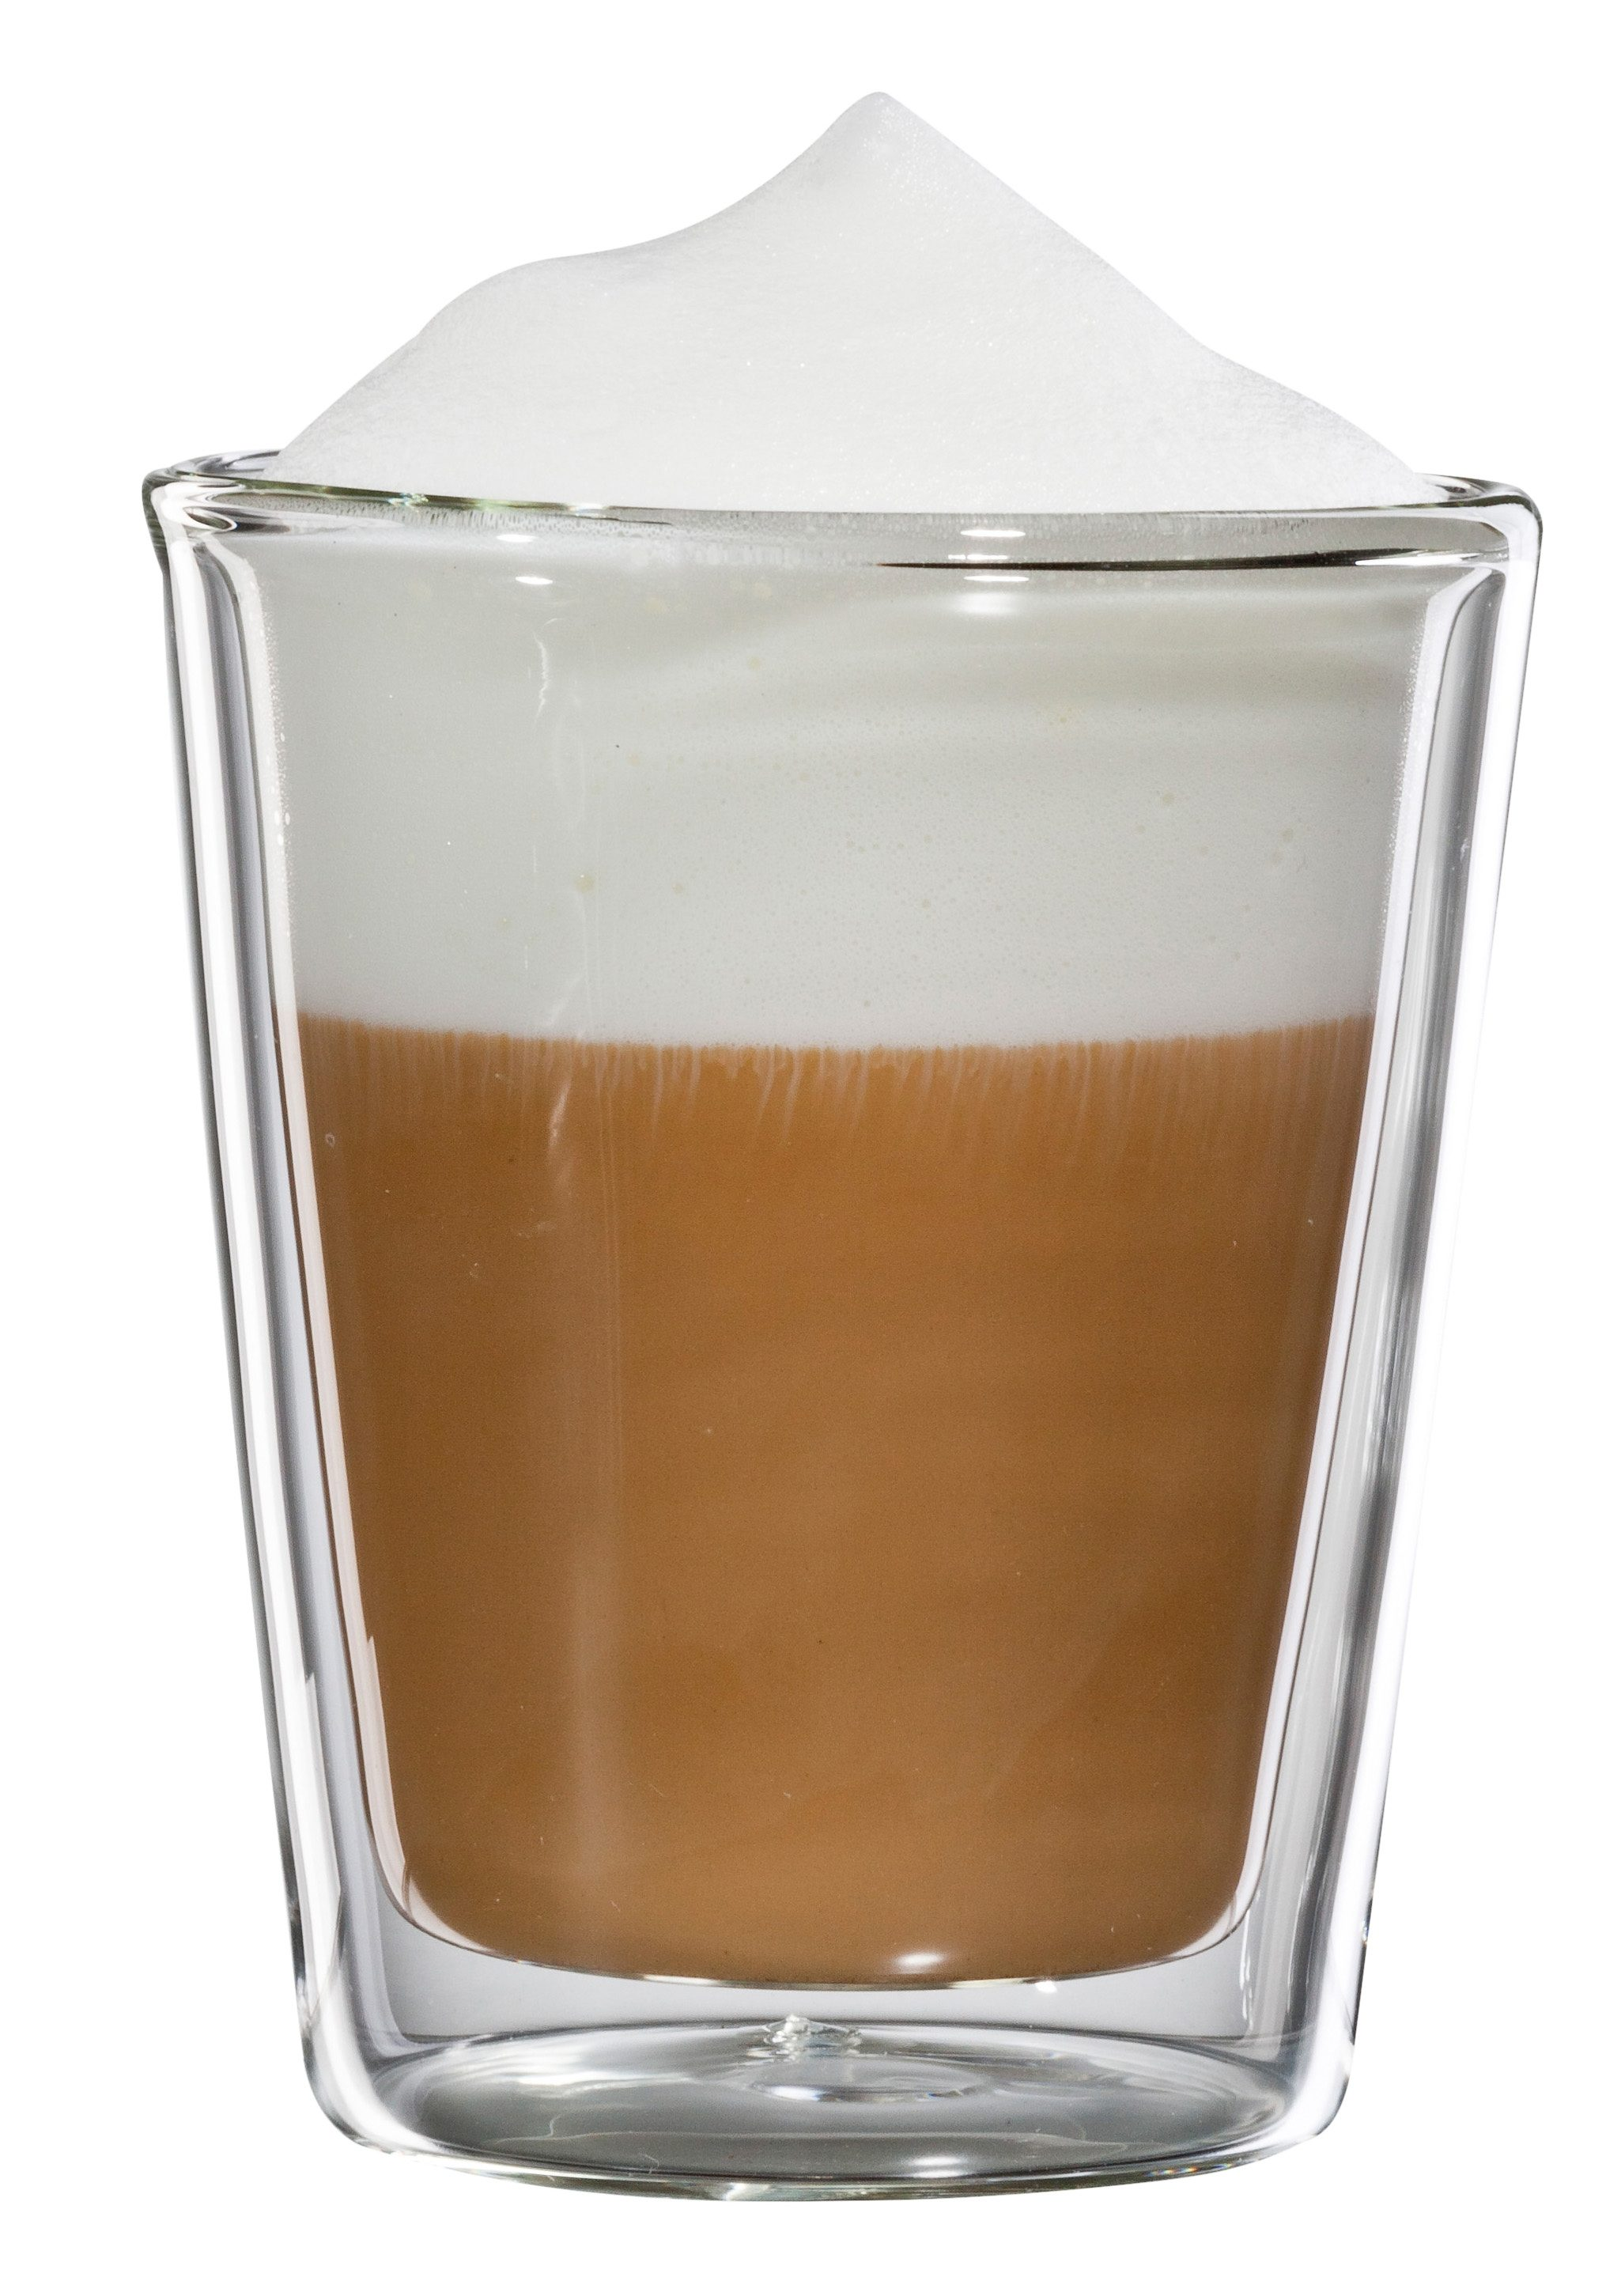 bloomix Cappuccino-Glas, 4er Set, »Milano«, 200 ml